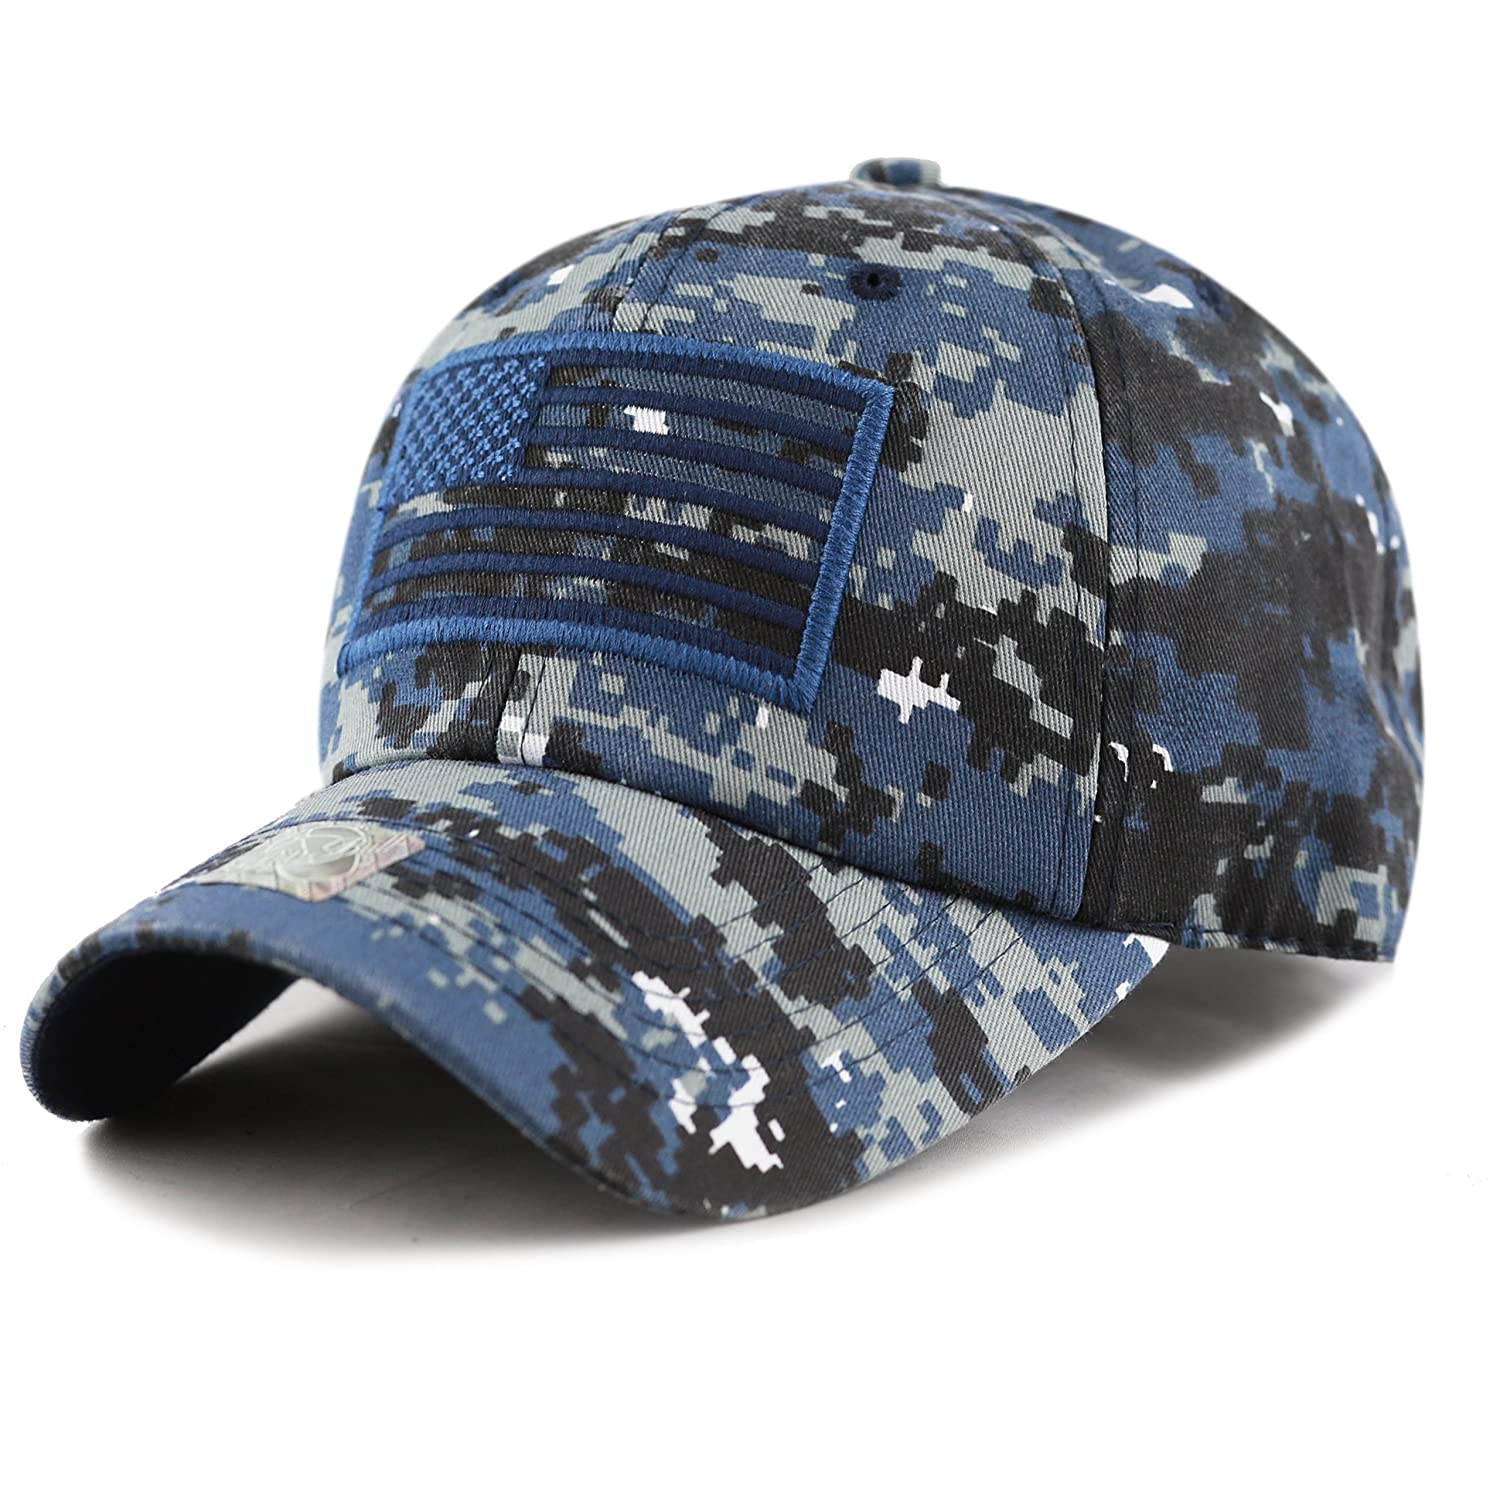 THE HAT DEPOT Tactical Operator USA Flag Cap 1100C-024-BK